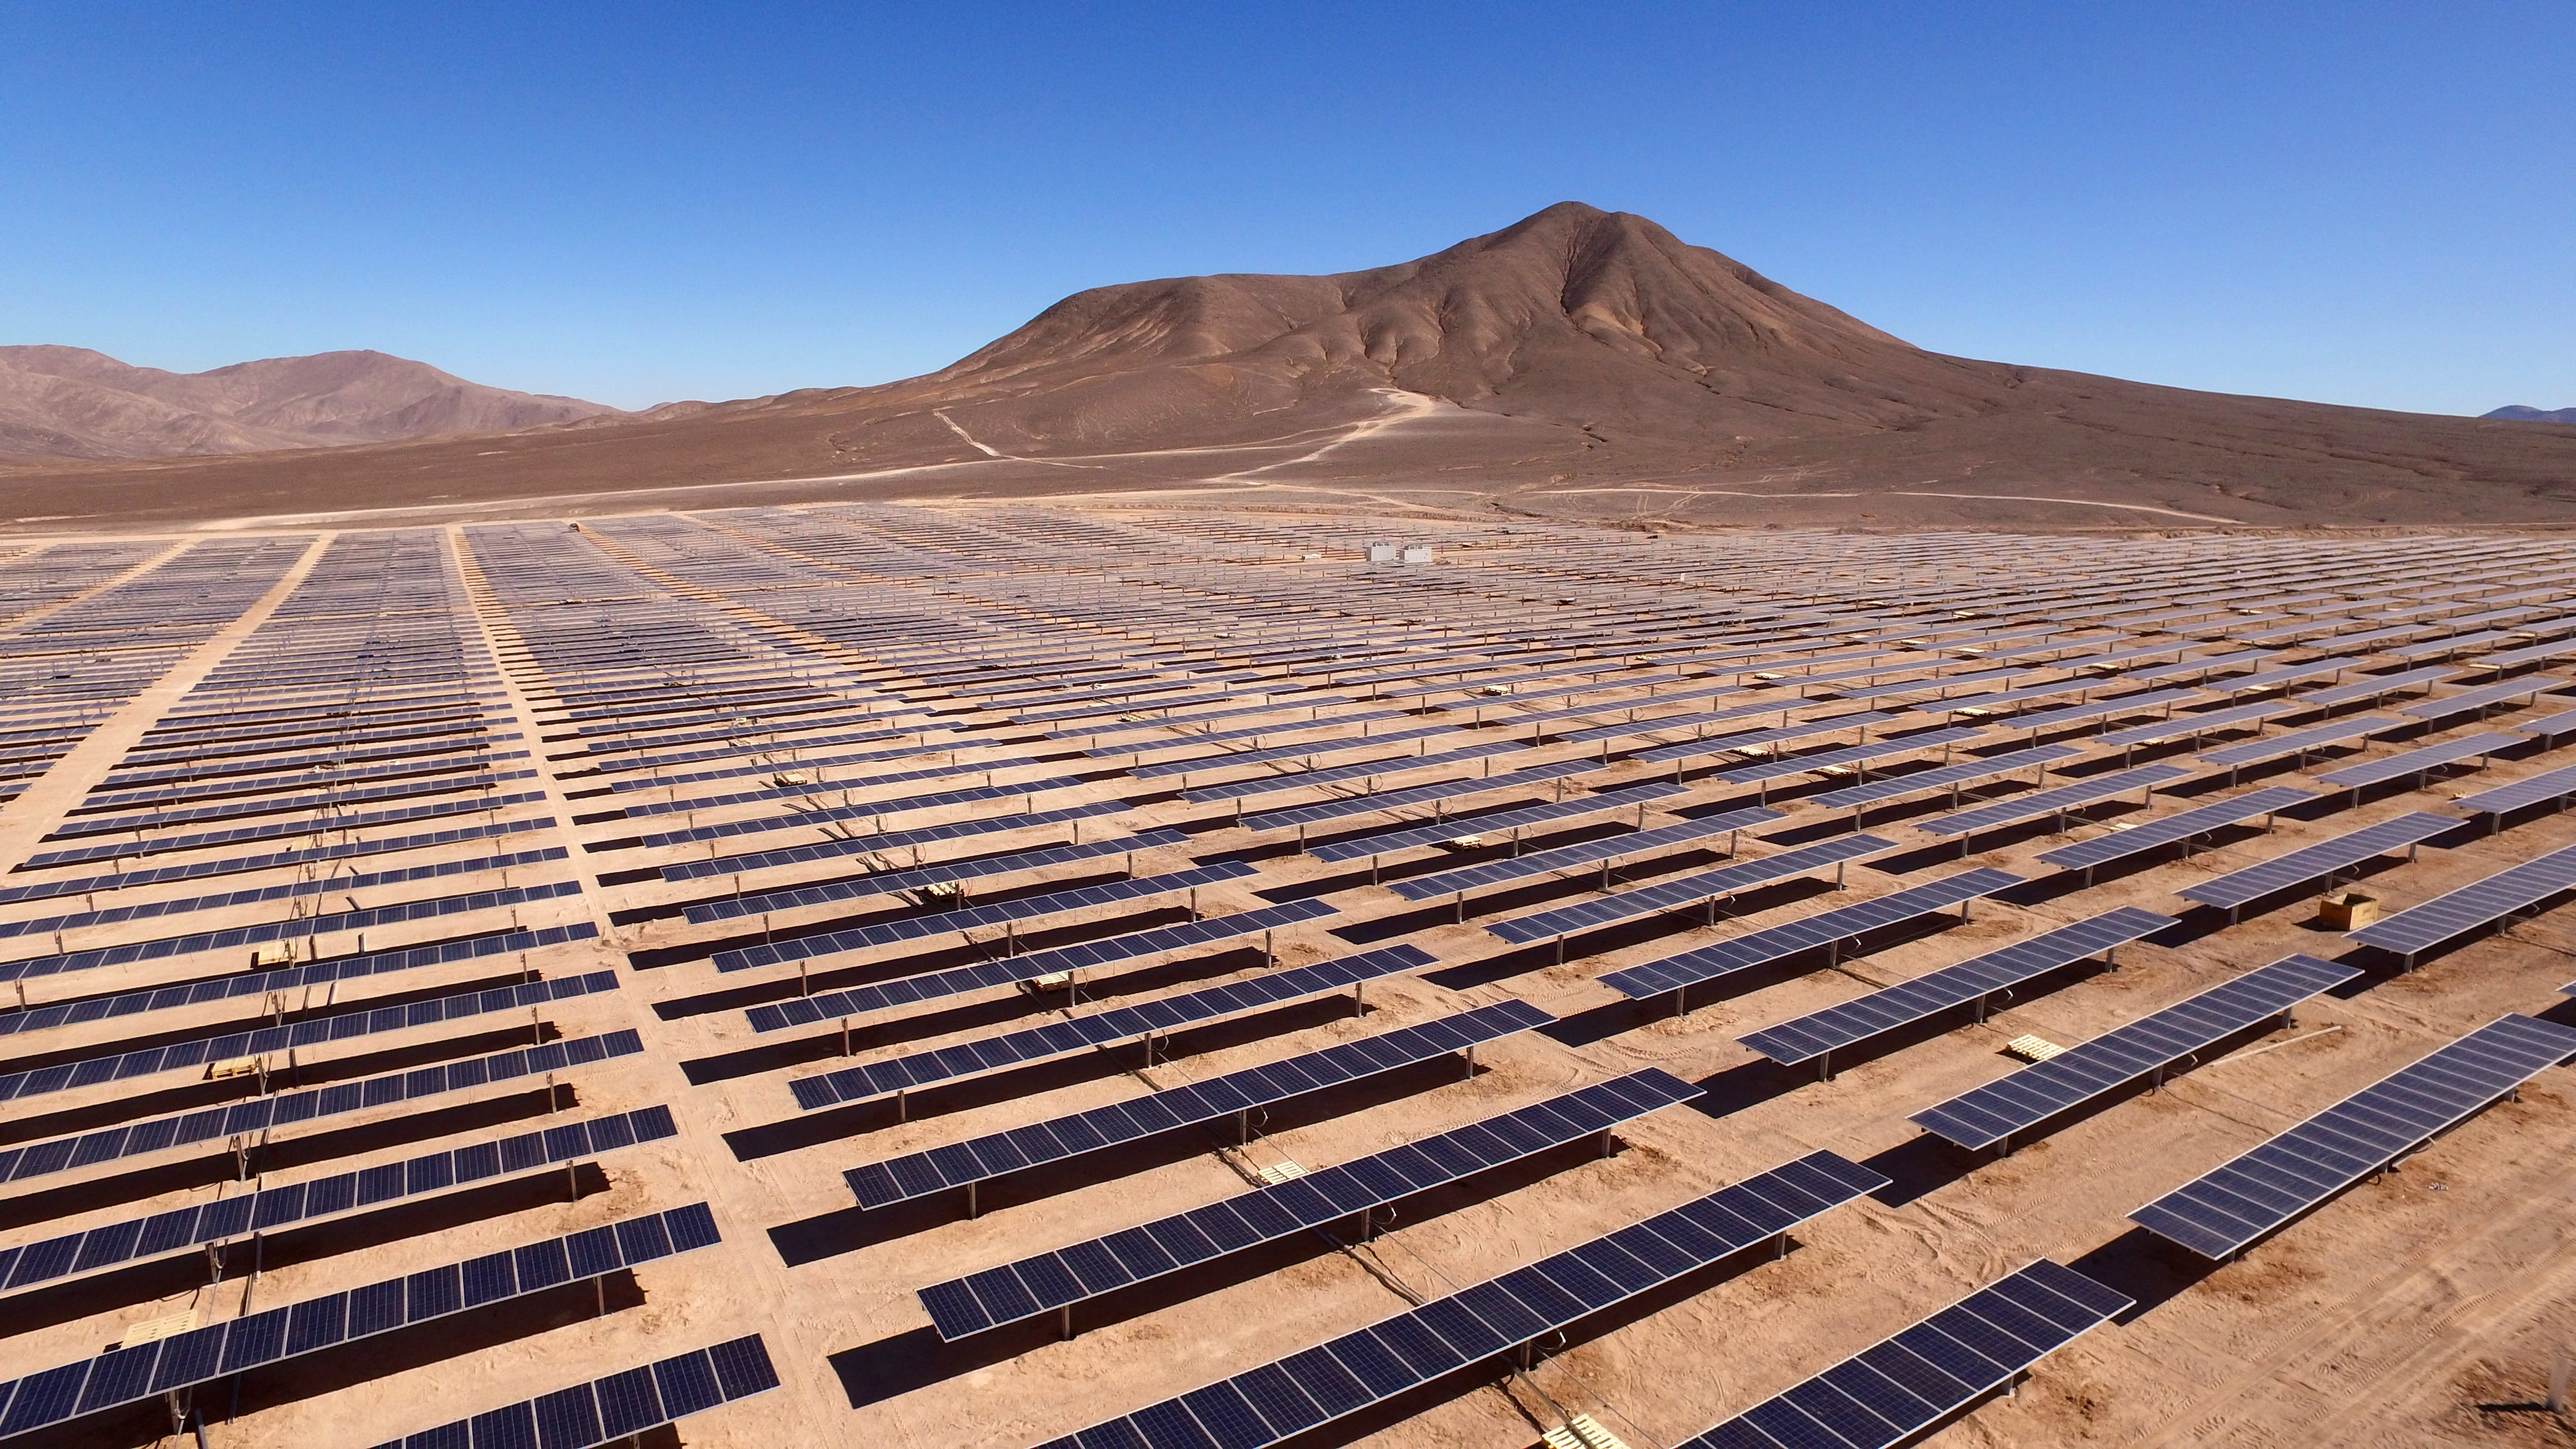 Cattle Station to House World's Largest Solar Farm